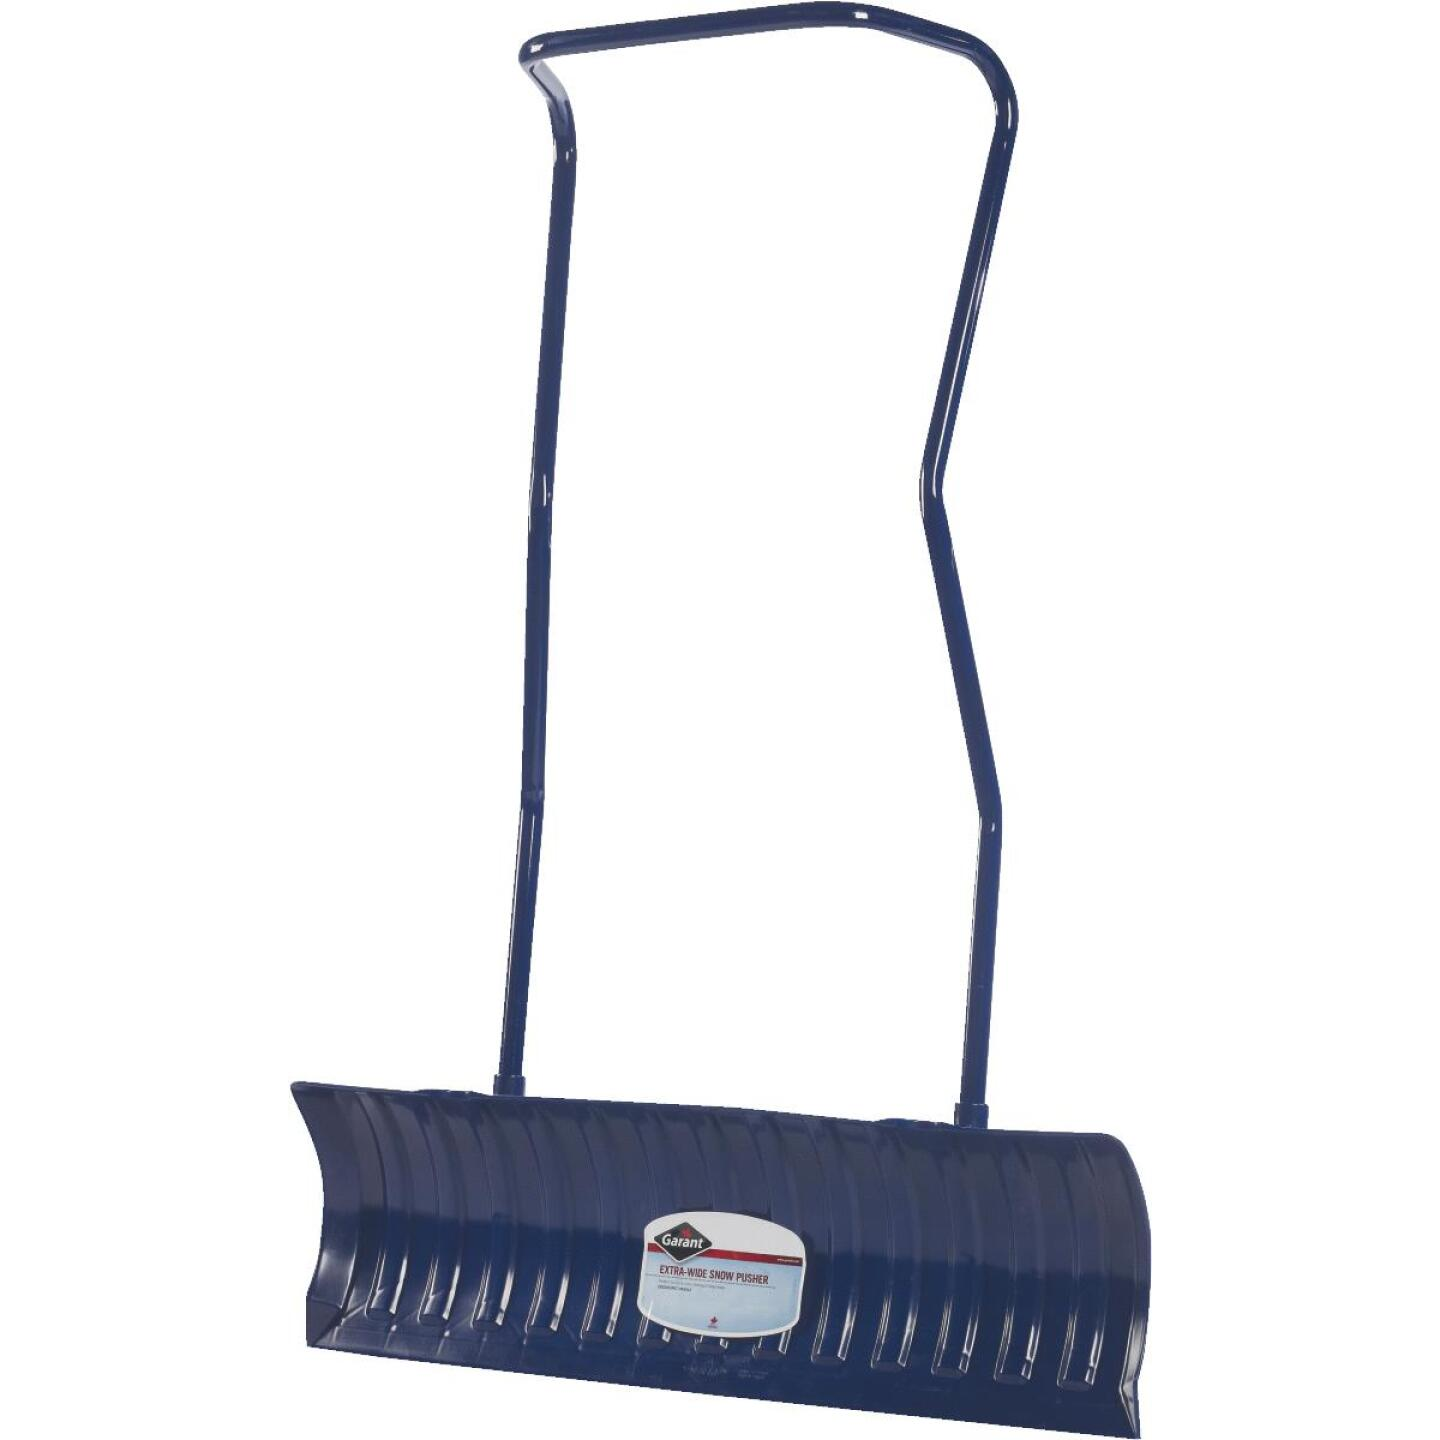 Garant Yukon 36 In. Poly Snow Pusher with 42.5 In. Steel Handle Image 1